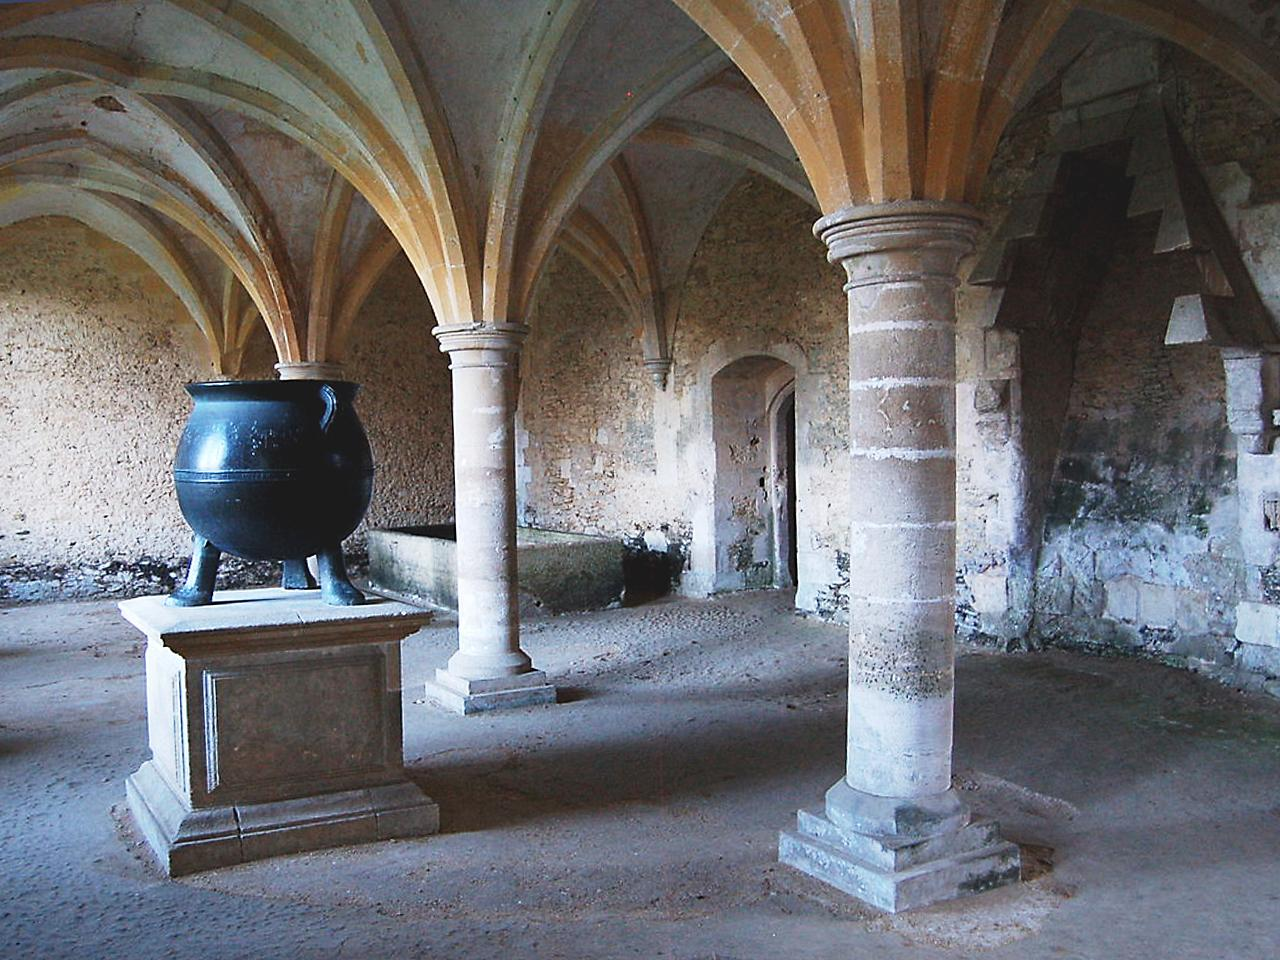 medieval vaulted chamber